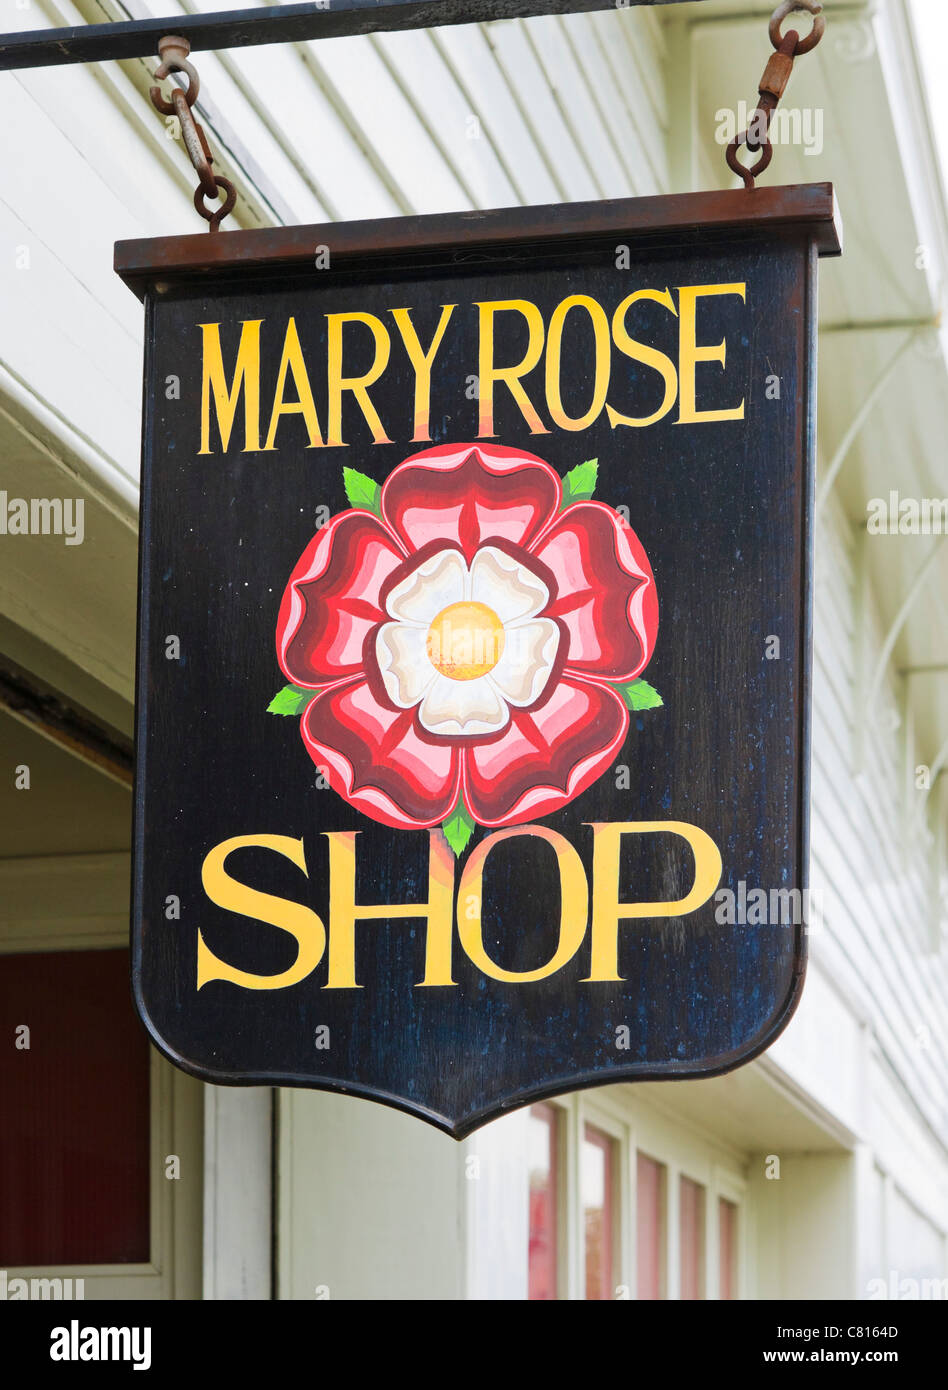 Sign forthe Mary Rose museum shop in Portsmouth Historic Dockyard, Portsmouth, Hampshire, England, UK - Stock Image